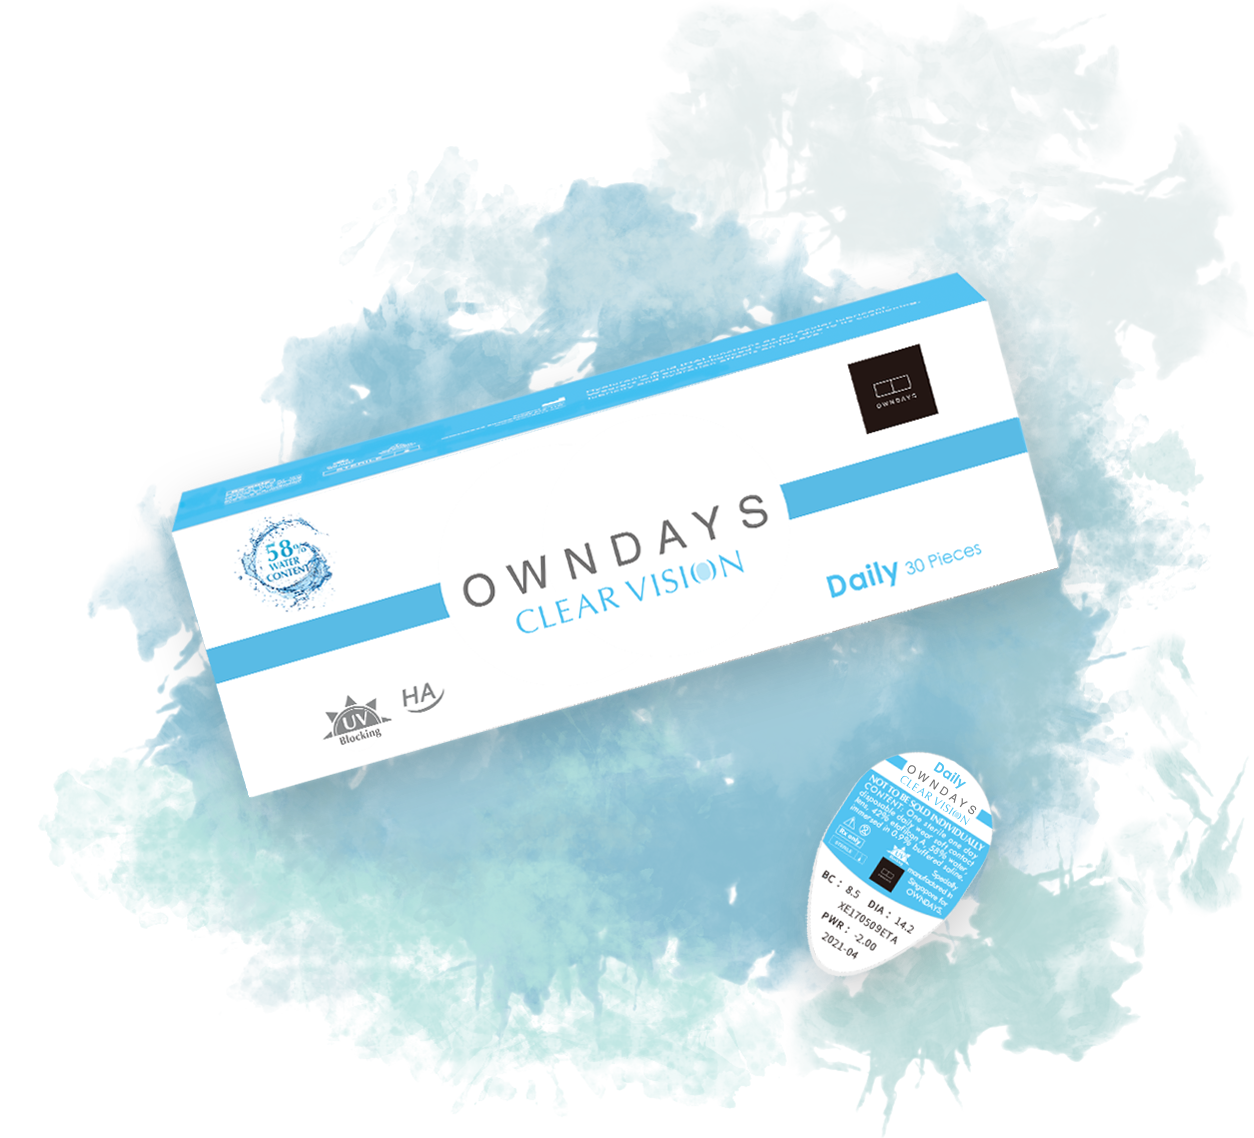 OWNDAYS CLEAR VISION package